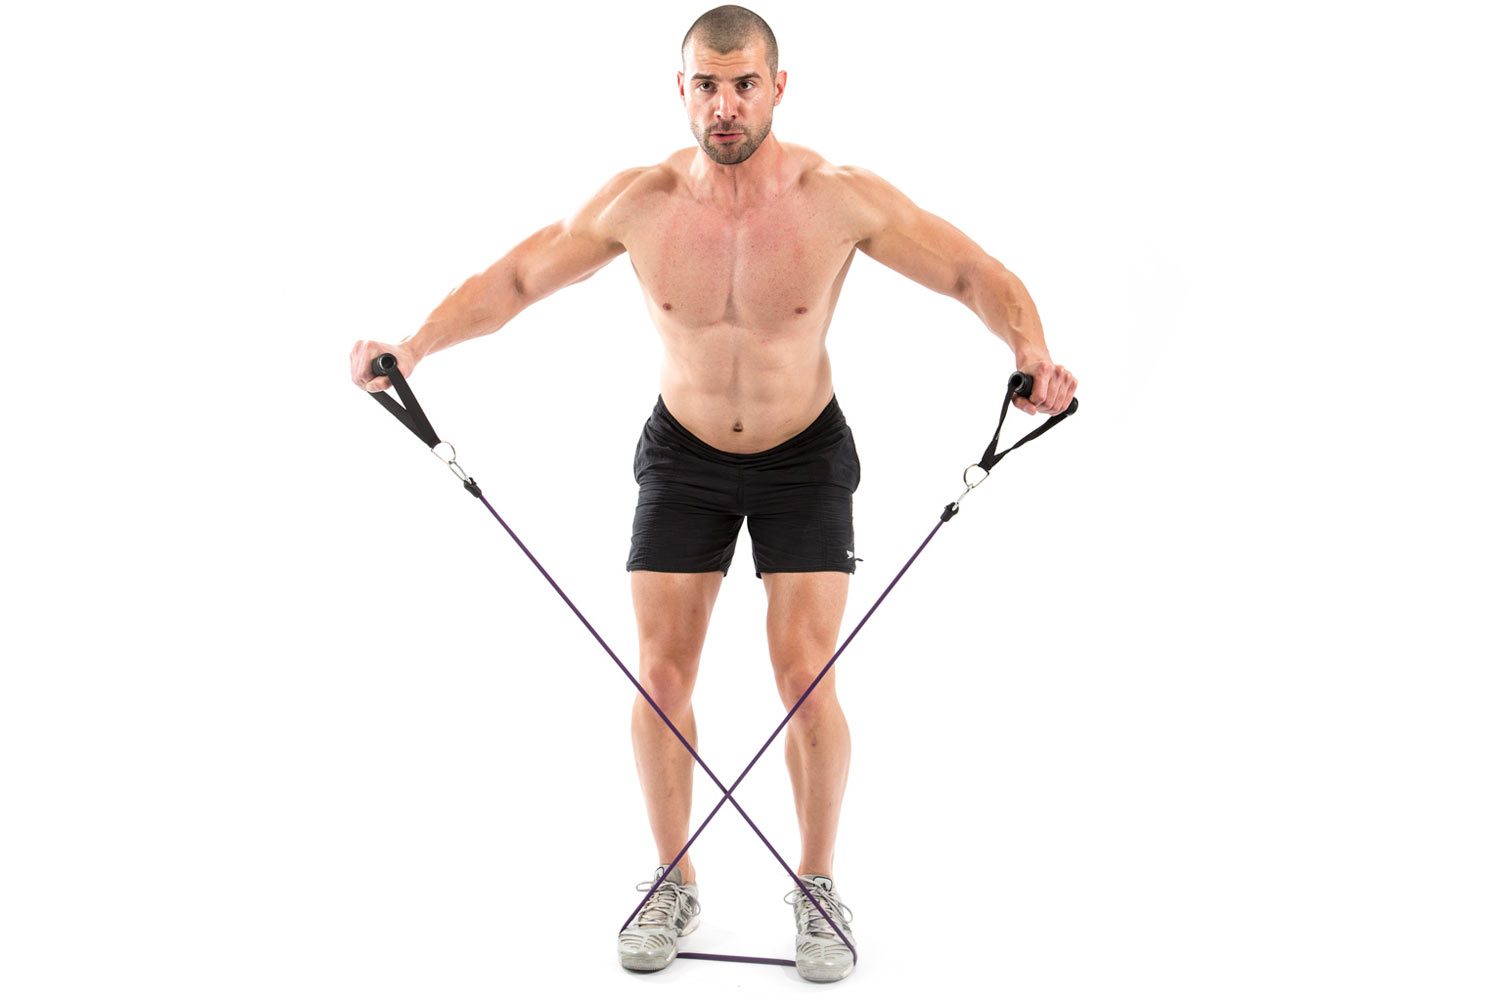 ProSource Blog - 4 Ways Exercise Can Improve Your Overall Health This Winter | Deadlifts | Buy Resistance Bands